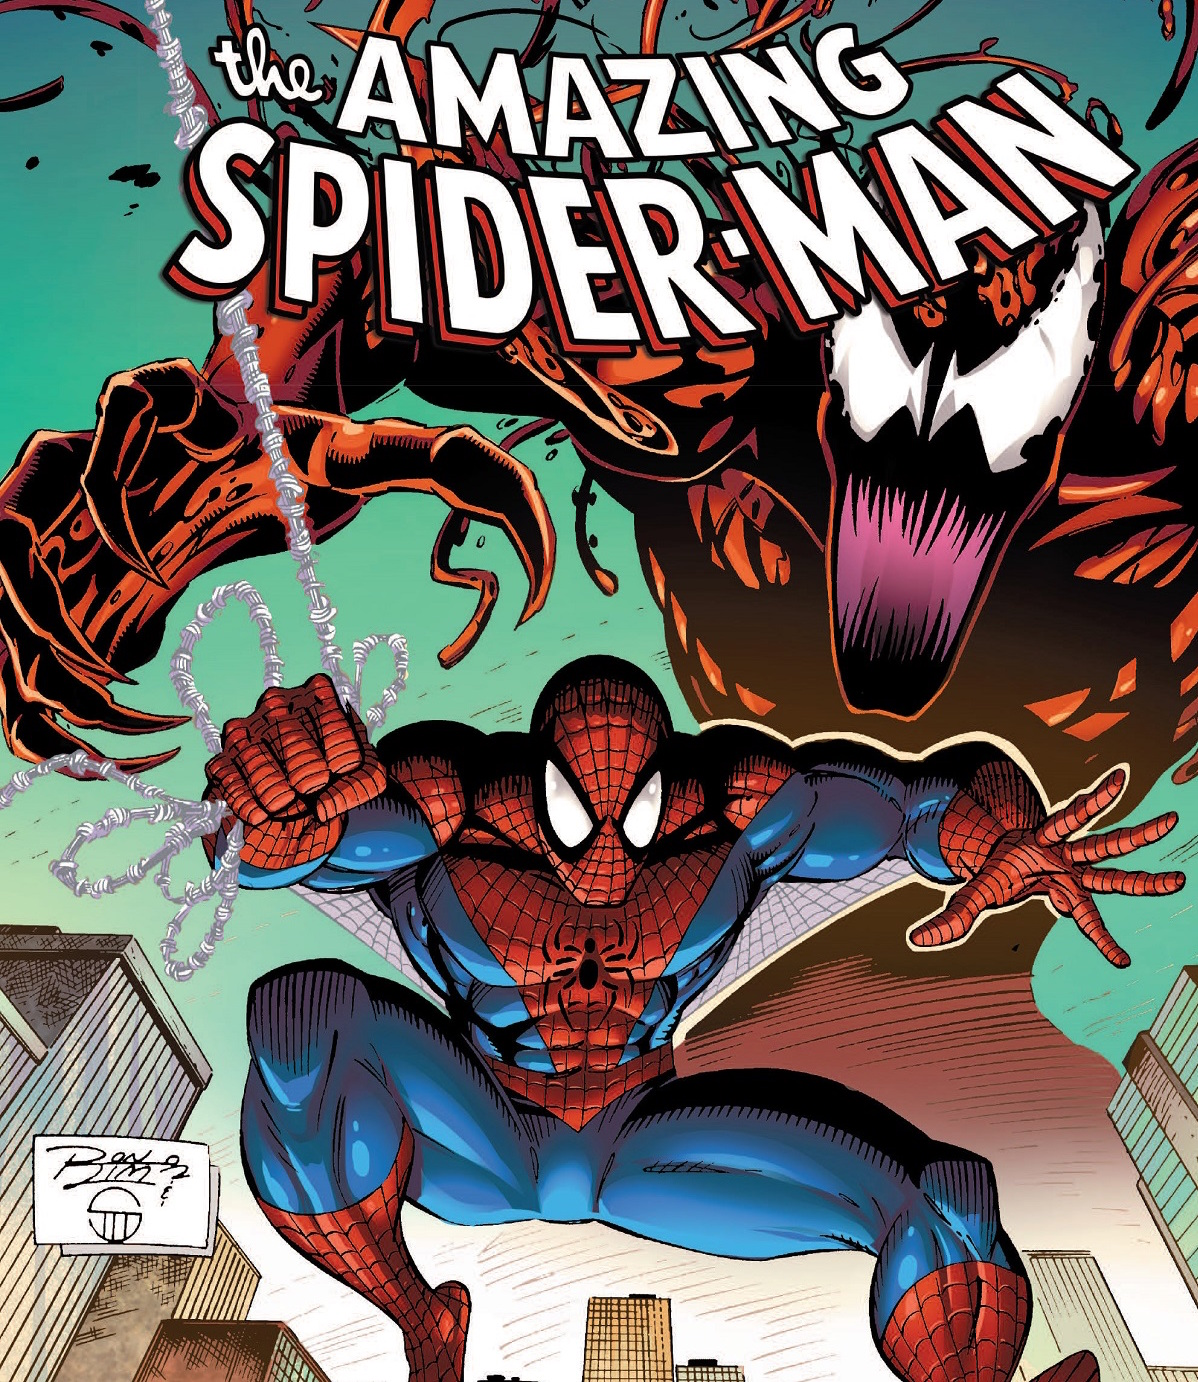 The Amazing Spider-Man Epic Collection: Maximum Carnage TPB Review: Spidey resists '90s cynicism